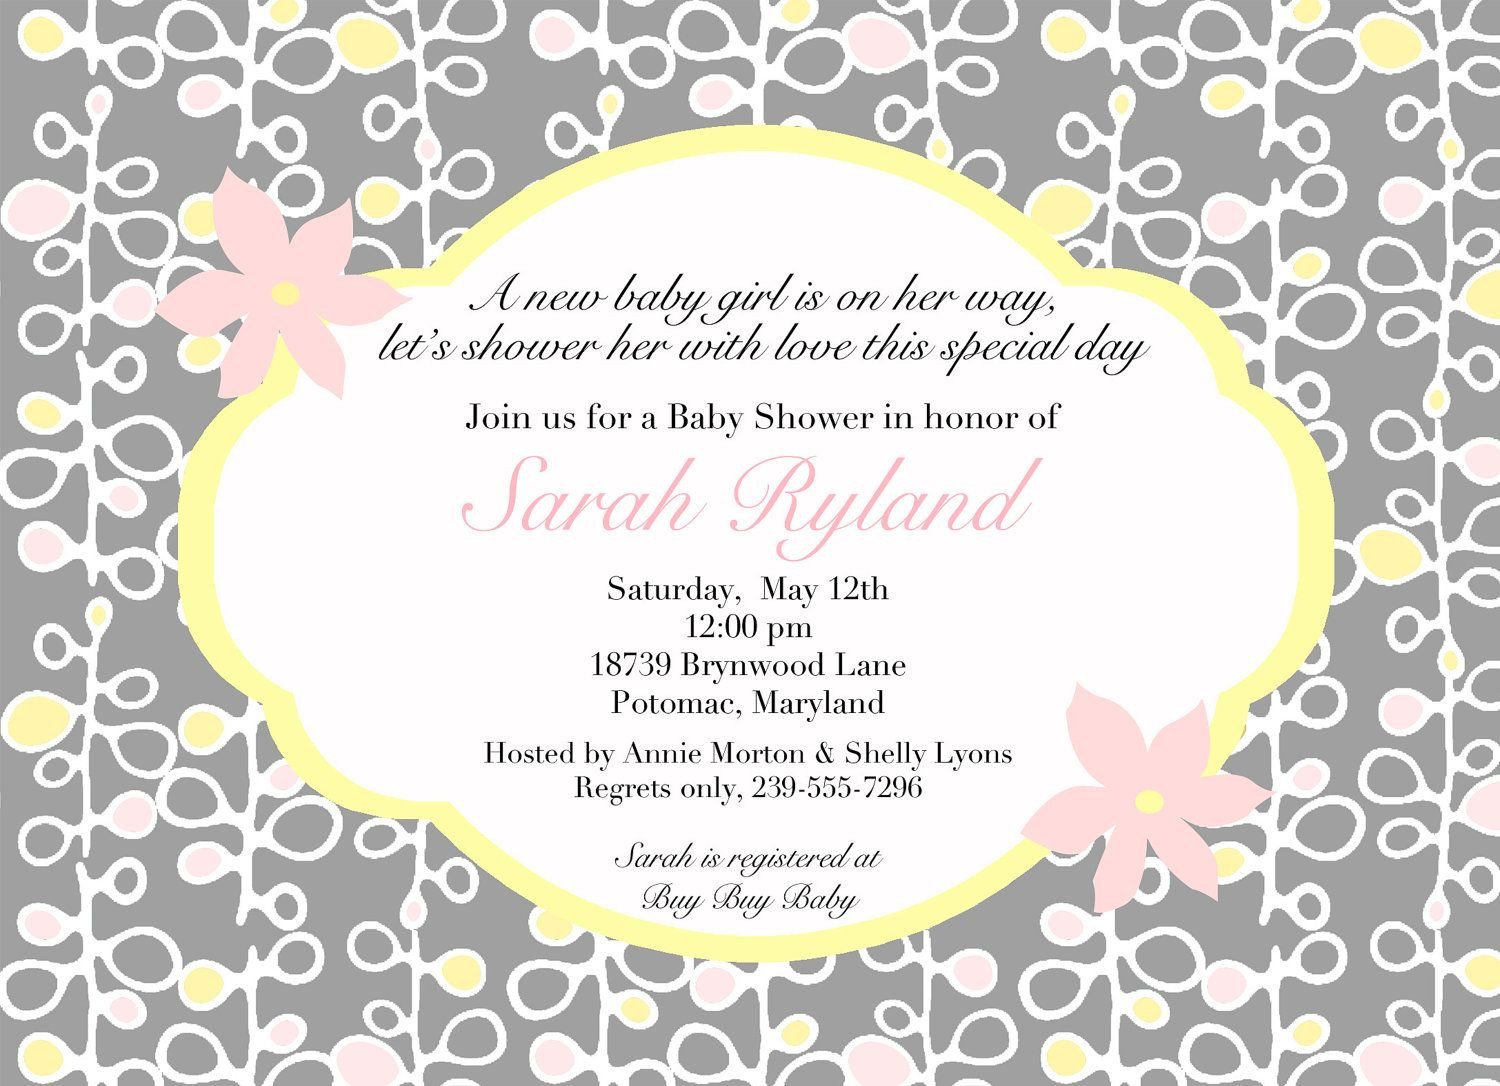 Baby Shower Invite Templates Download Free Template Baby Shower Invitation Wordings